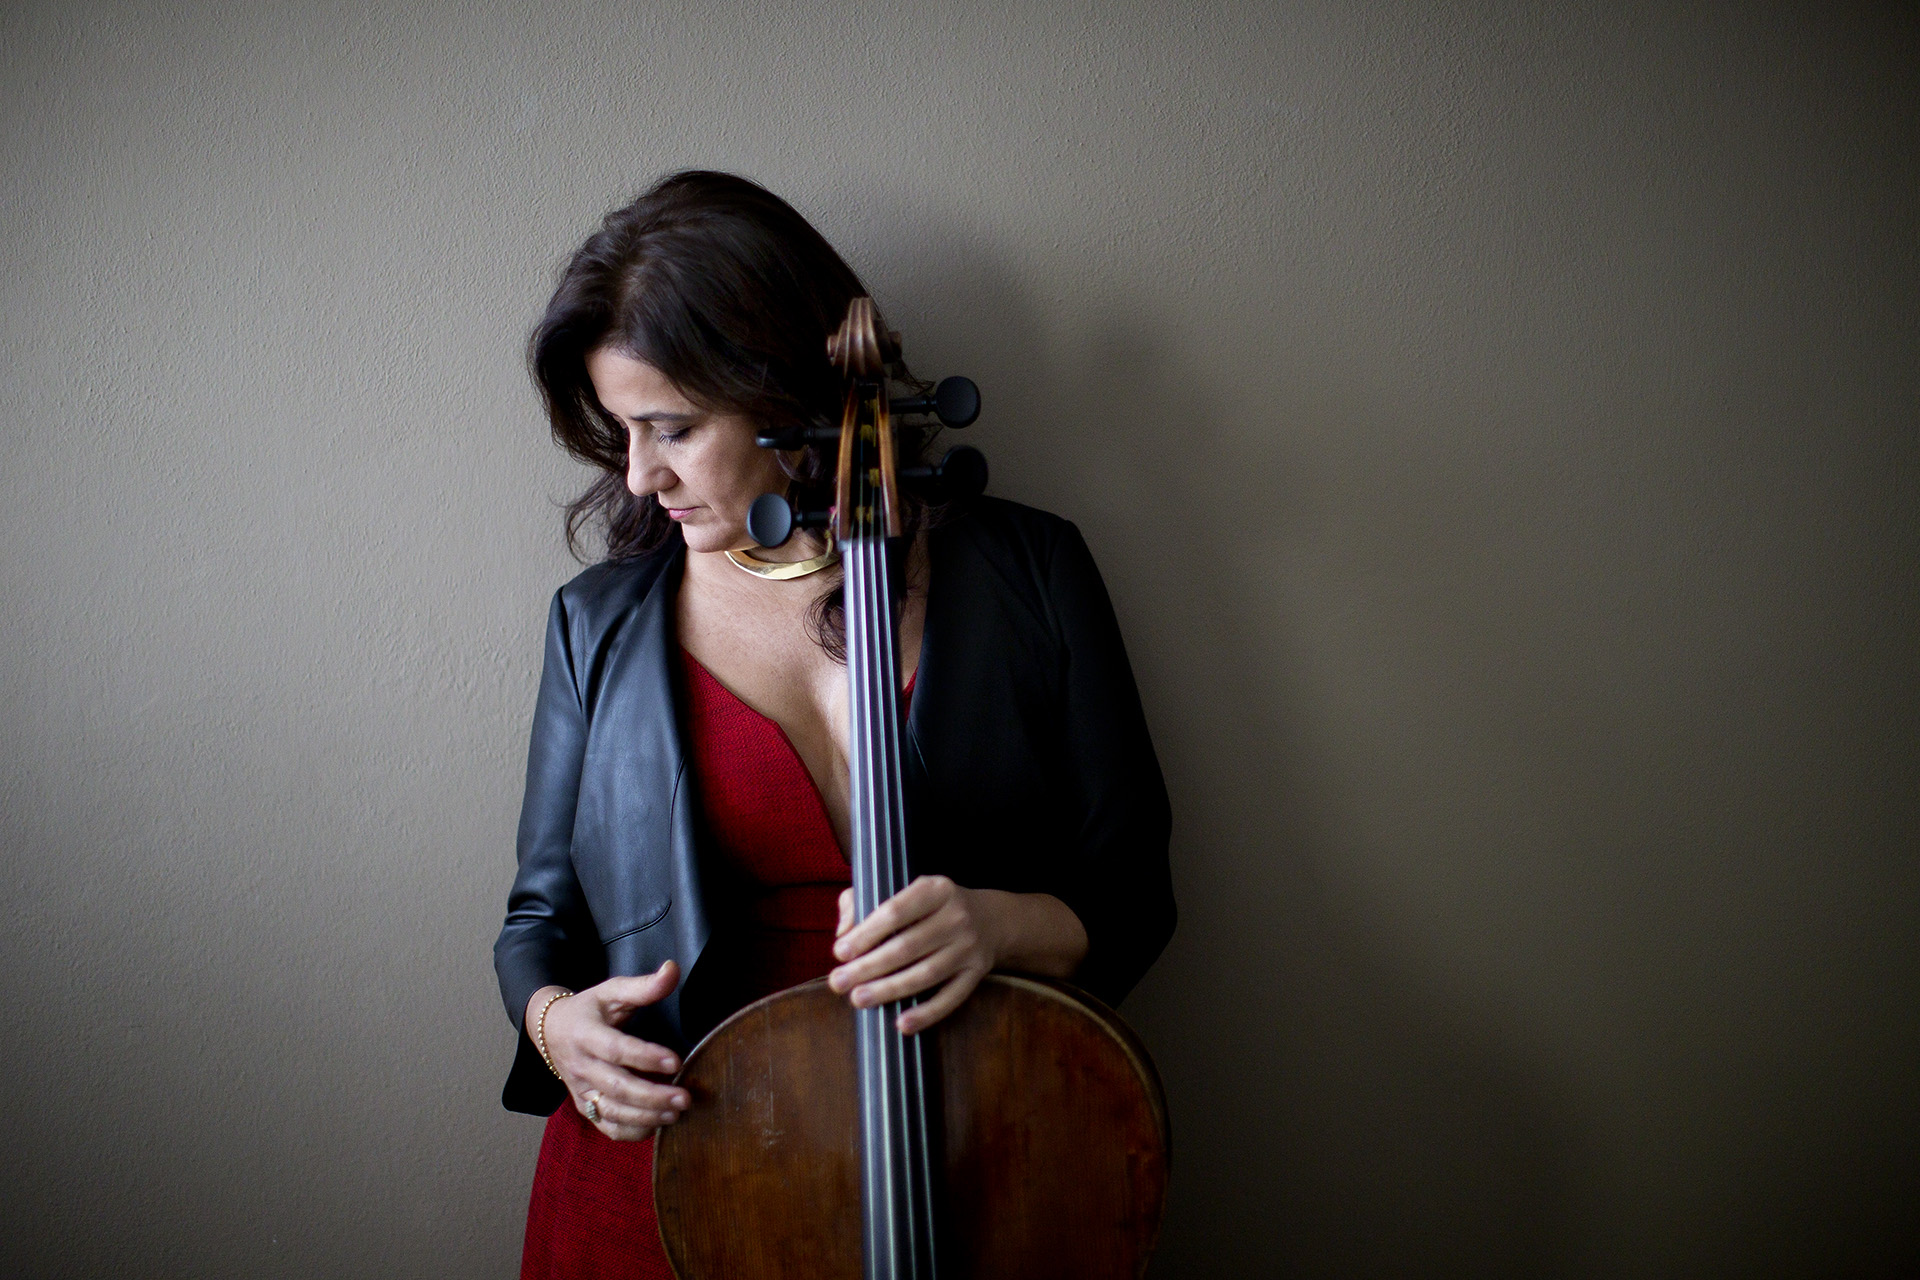 Silvia Chiesa cello - vertical